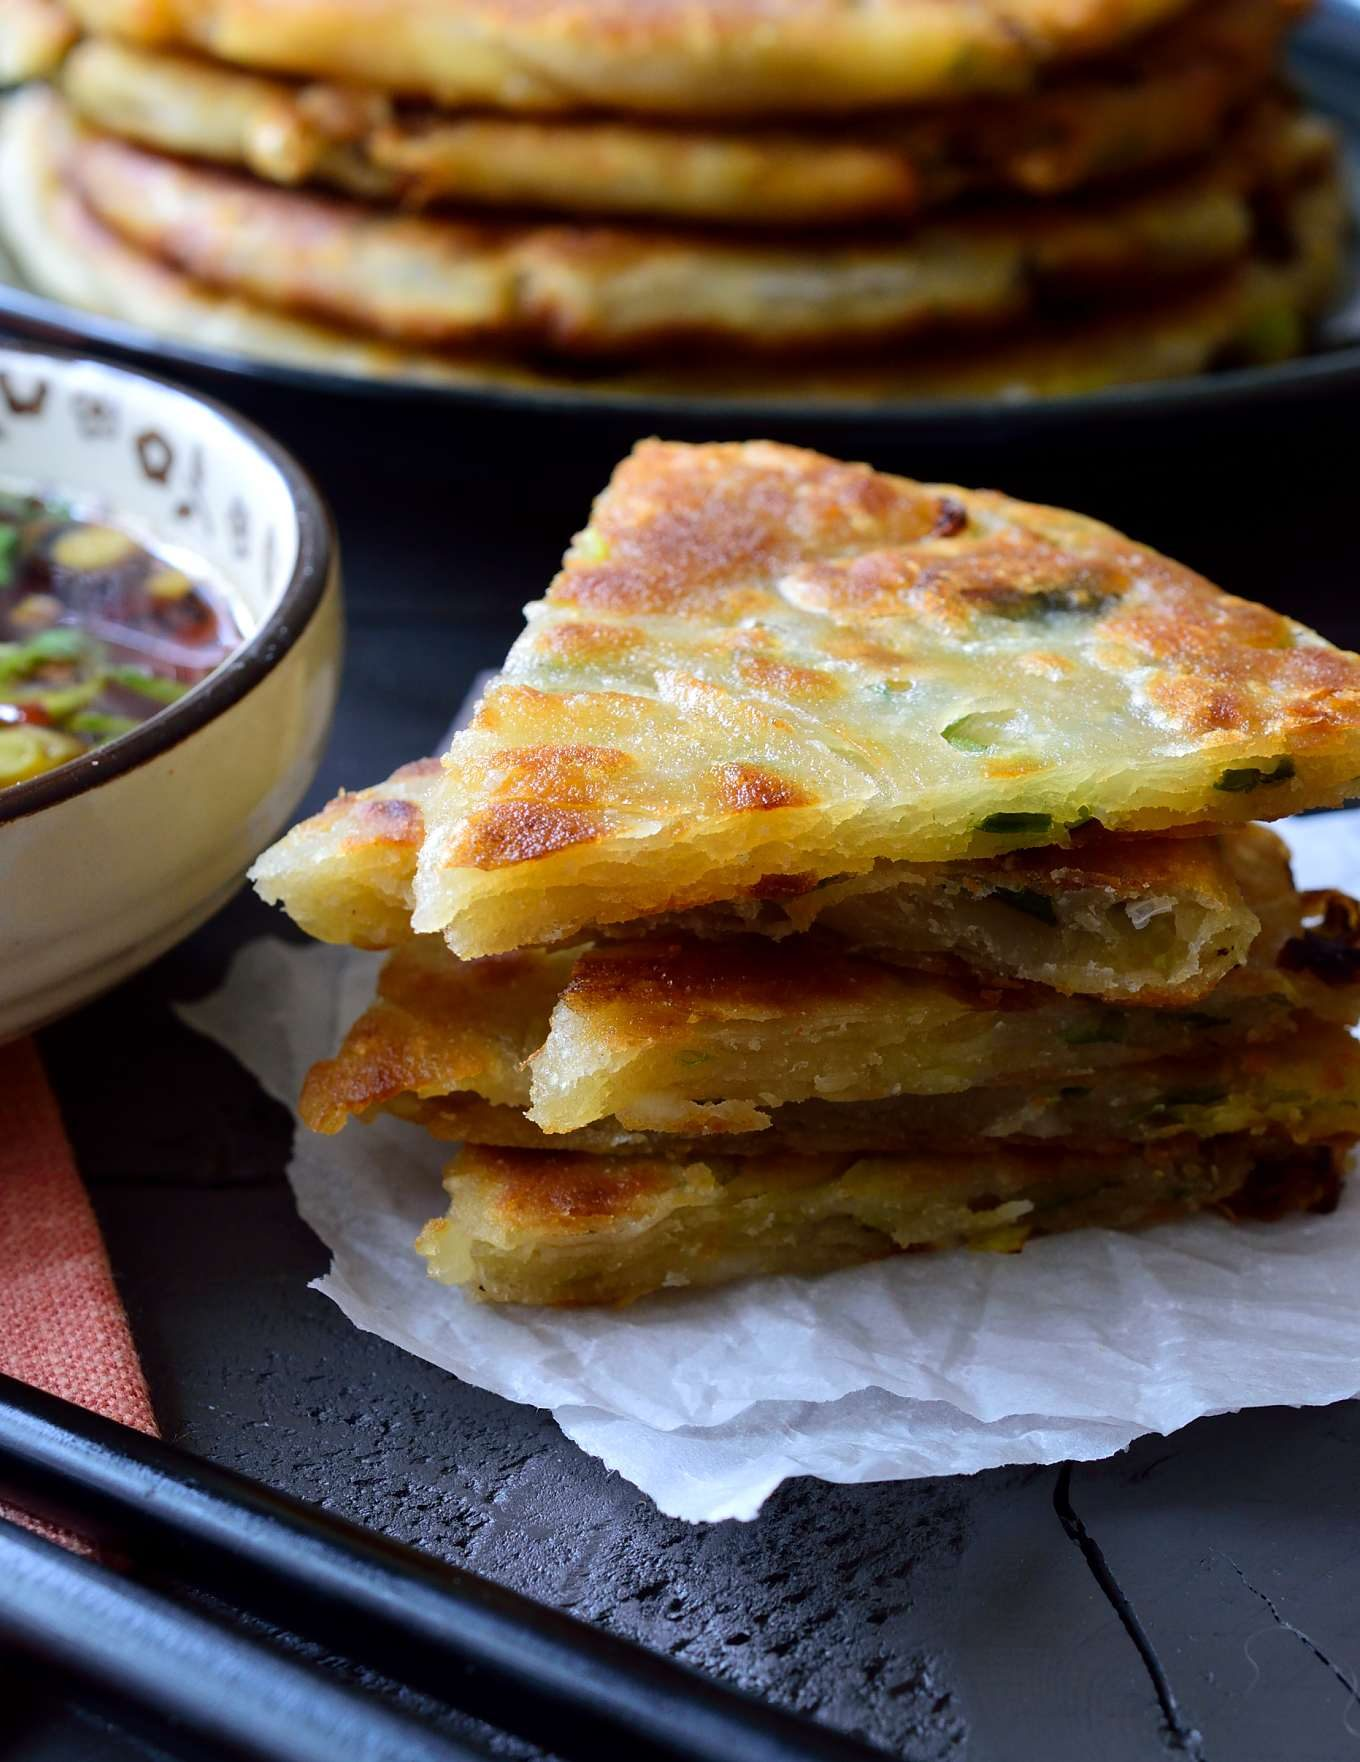 Vegan scallion pancakes are easy, tasty and make a great vegan or vegetarian appetizer or side. The technique may look tricky, but it's actually very easy!